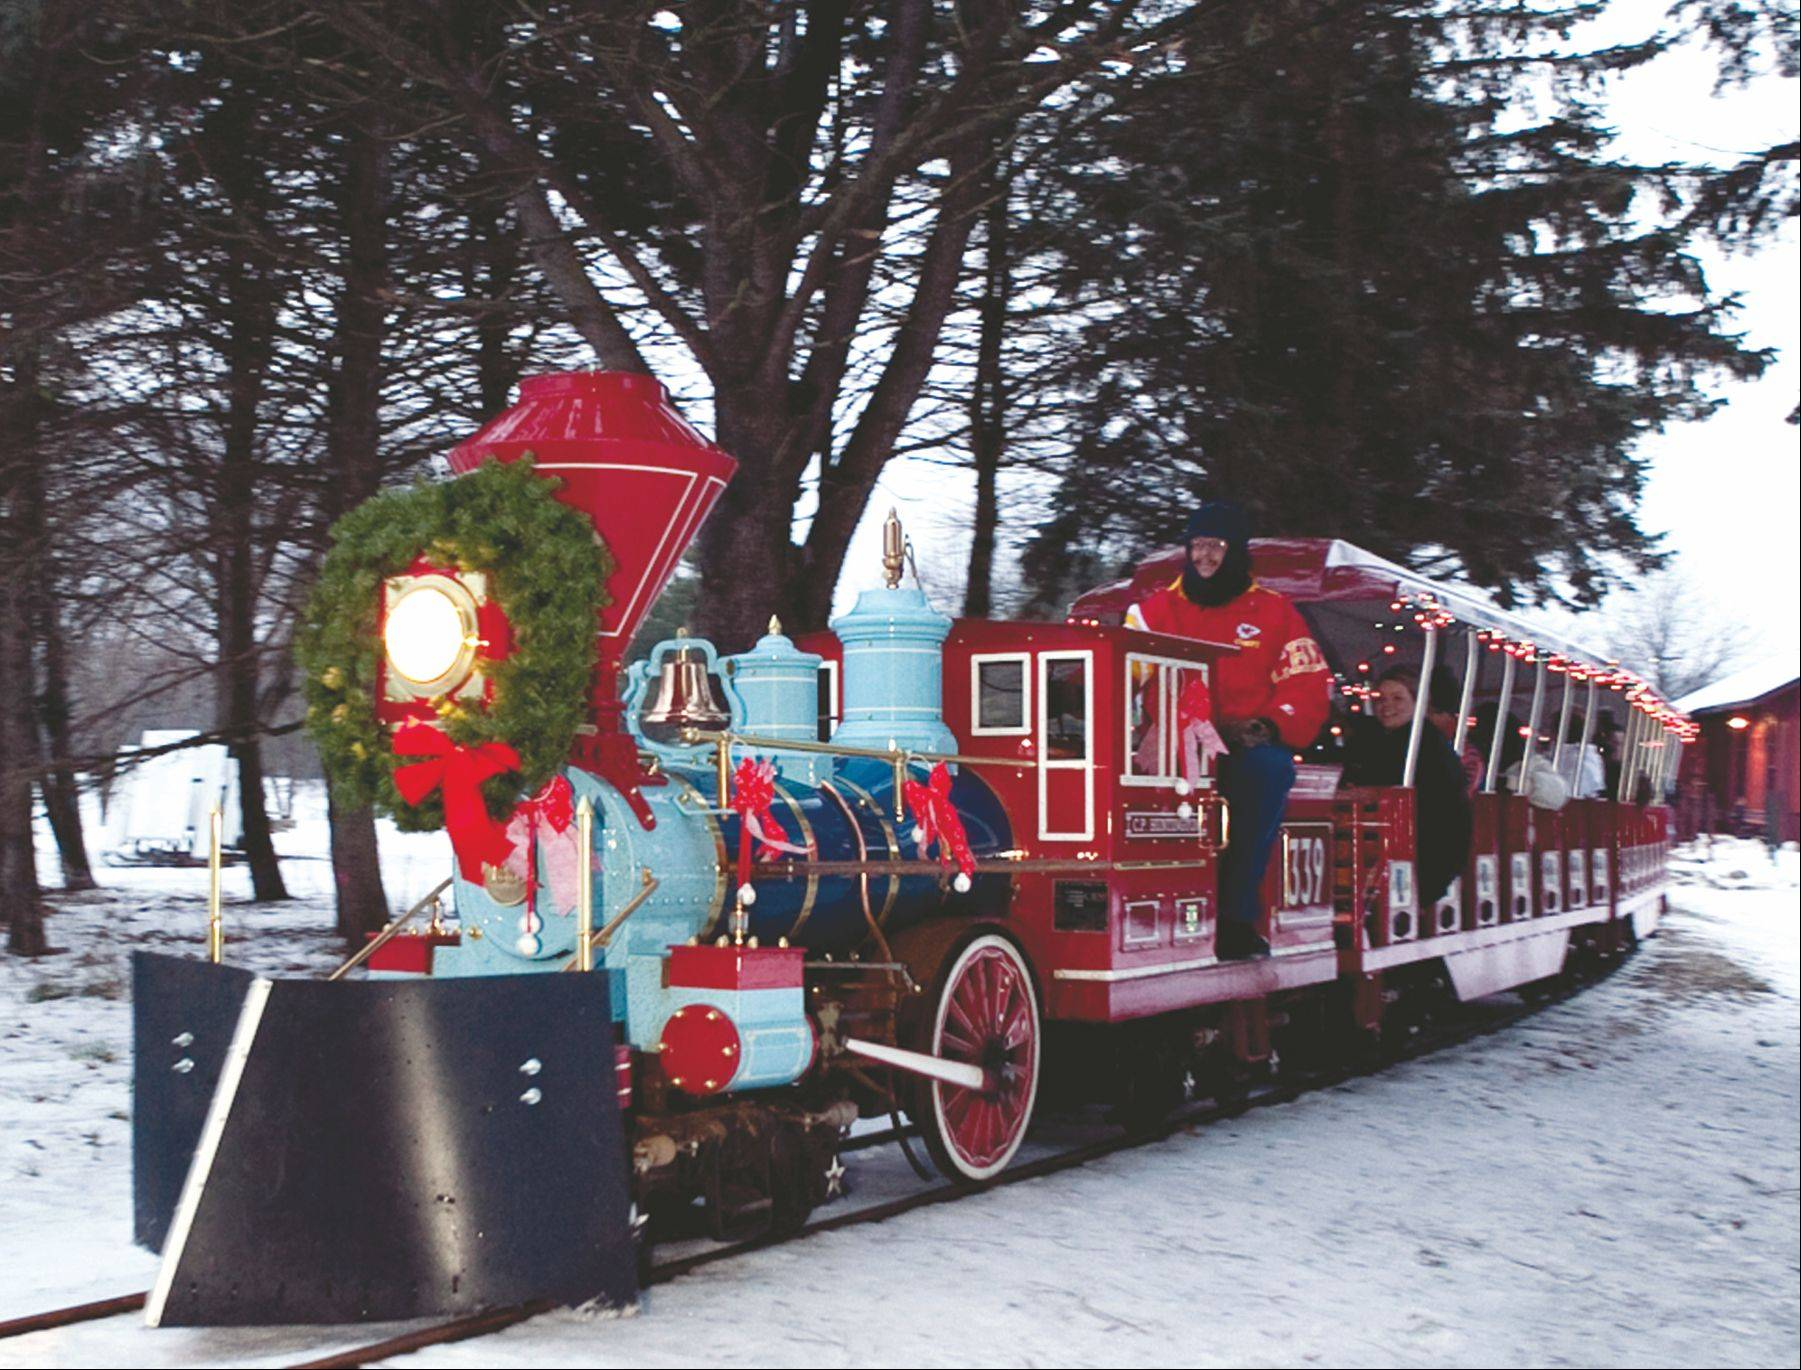 It's full speed ahead with holiday cheer when the Polar Express train makes its rounds during the first two December weekends at Blackberry Farm.